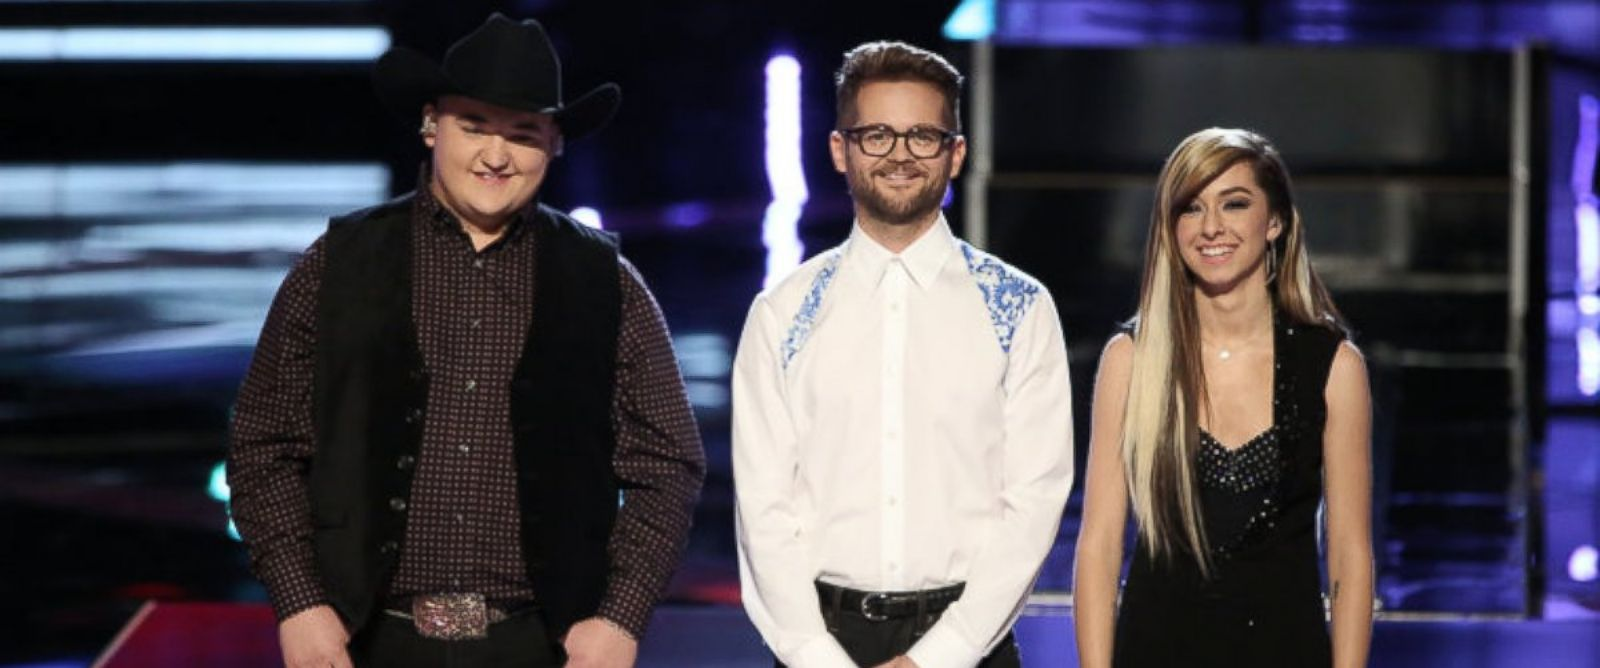 """PHOTO: From left, Jake Worthington, Josh Kaufman and Christina Grimmie are pictured on """"The Voice."""""""